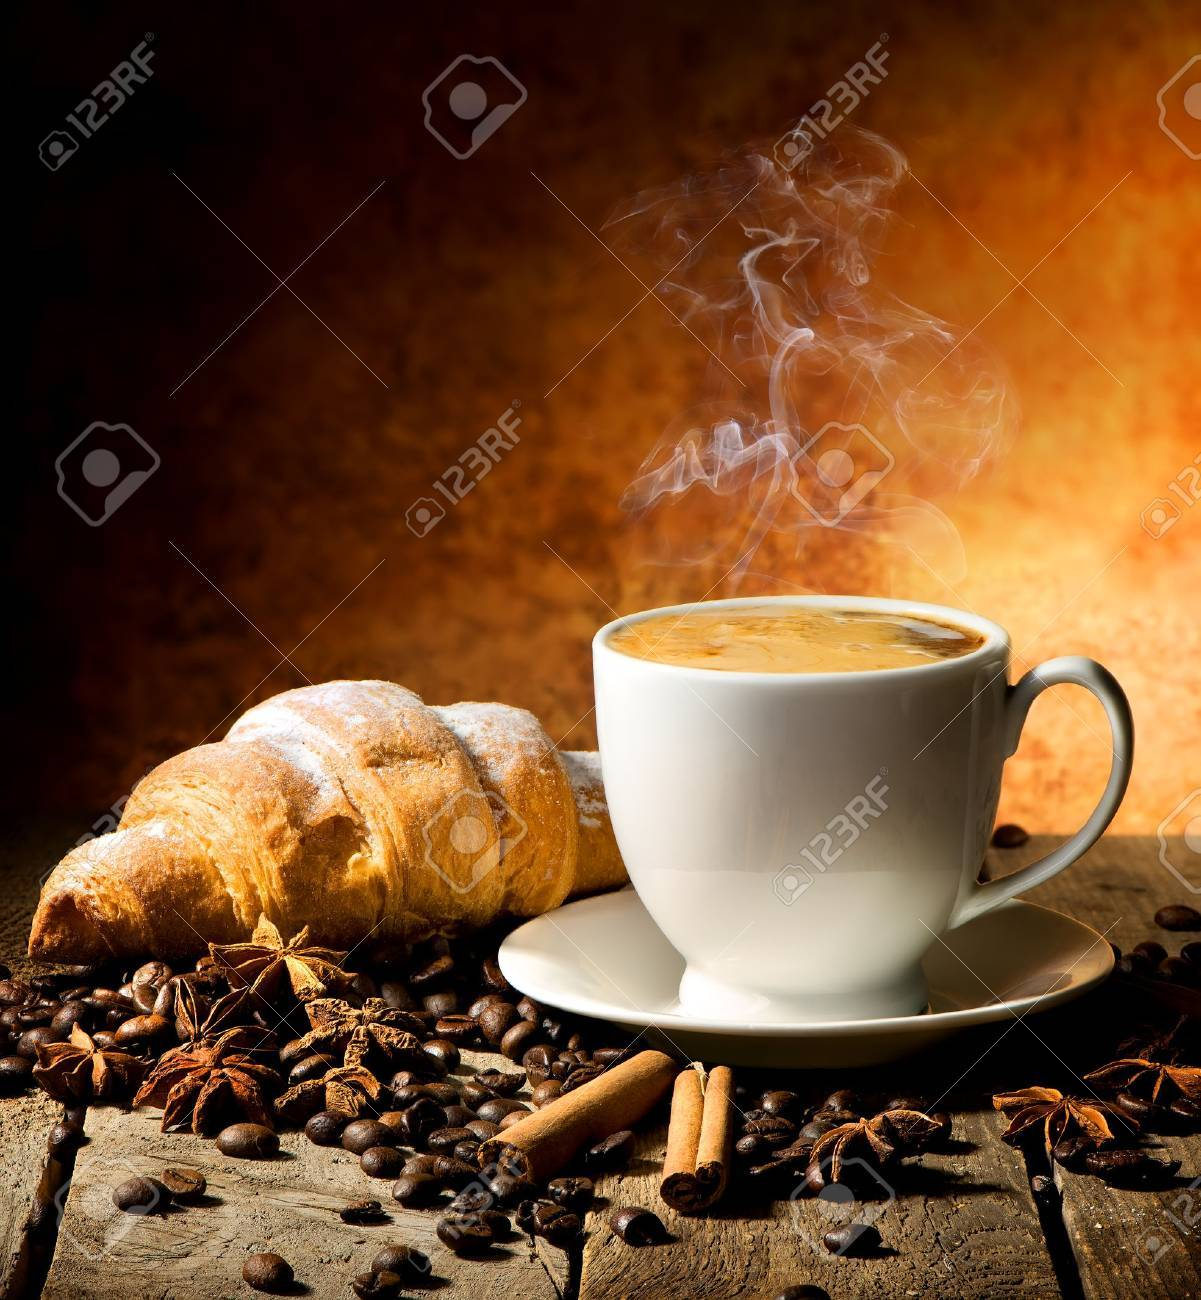 Fresh croissant and coffee with spices on table - 54300946